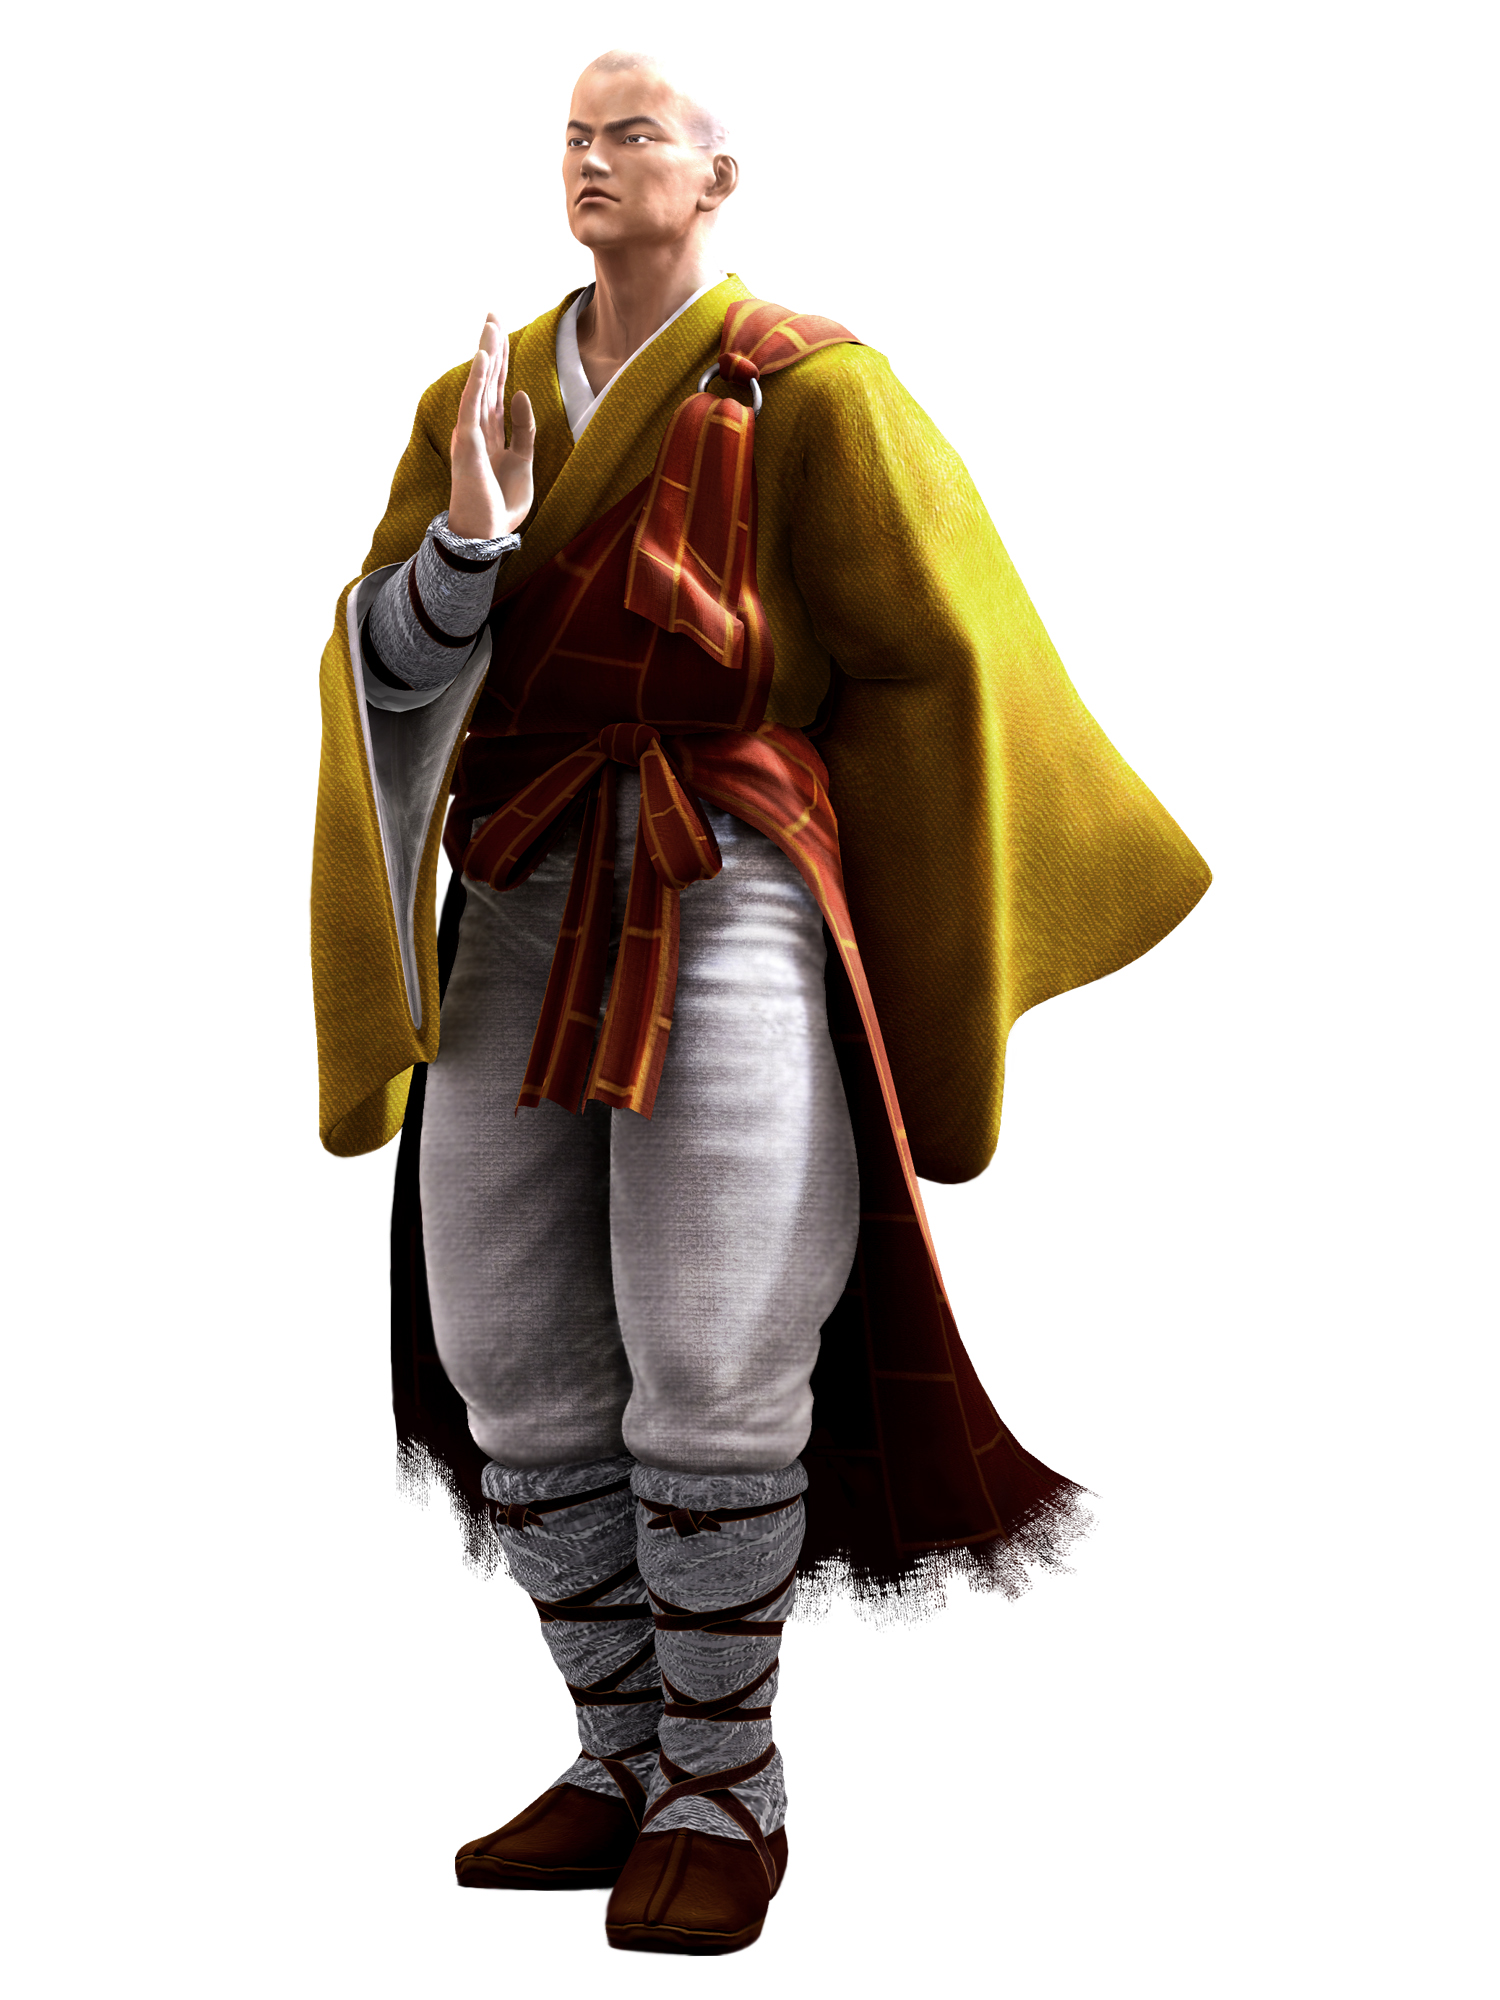 Lei Fei (Virtua Fighter)